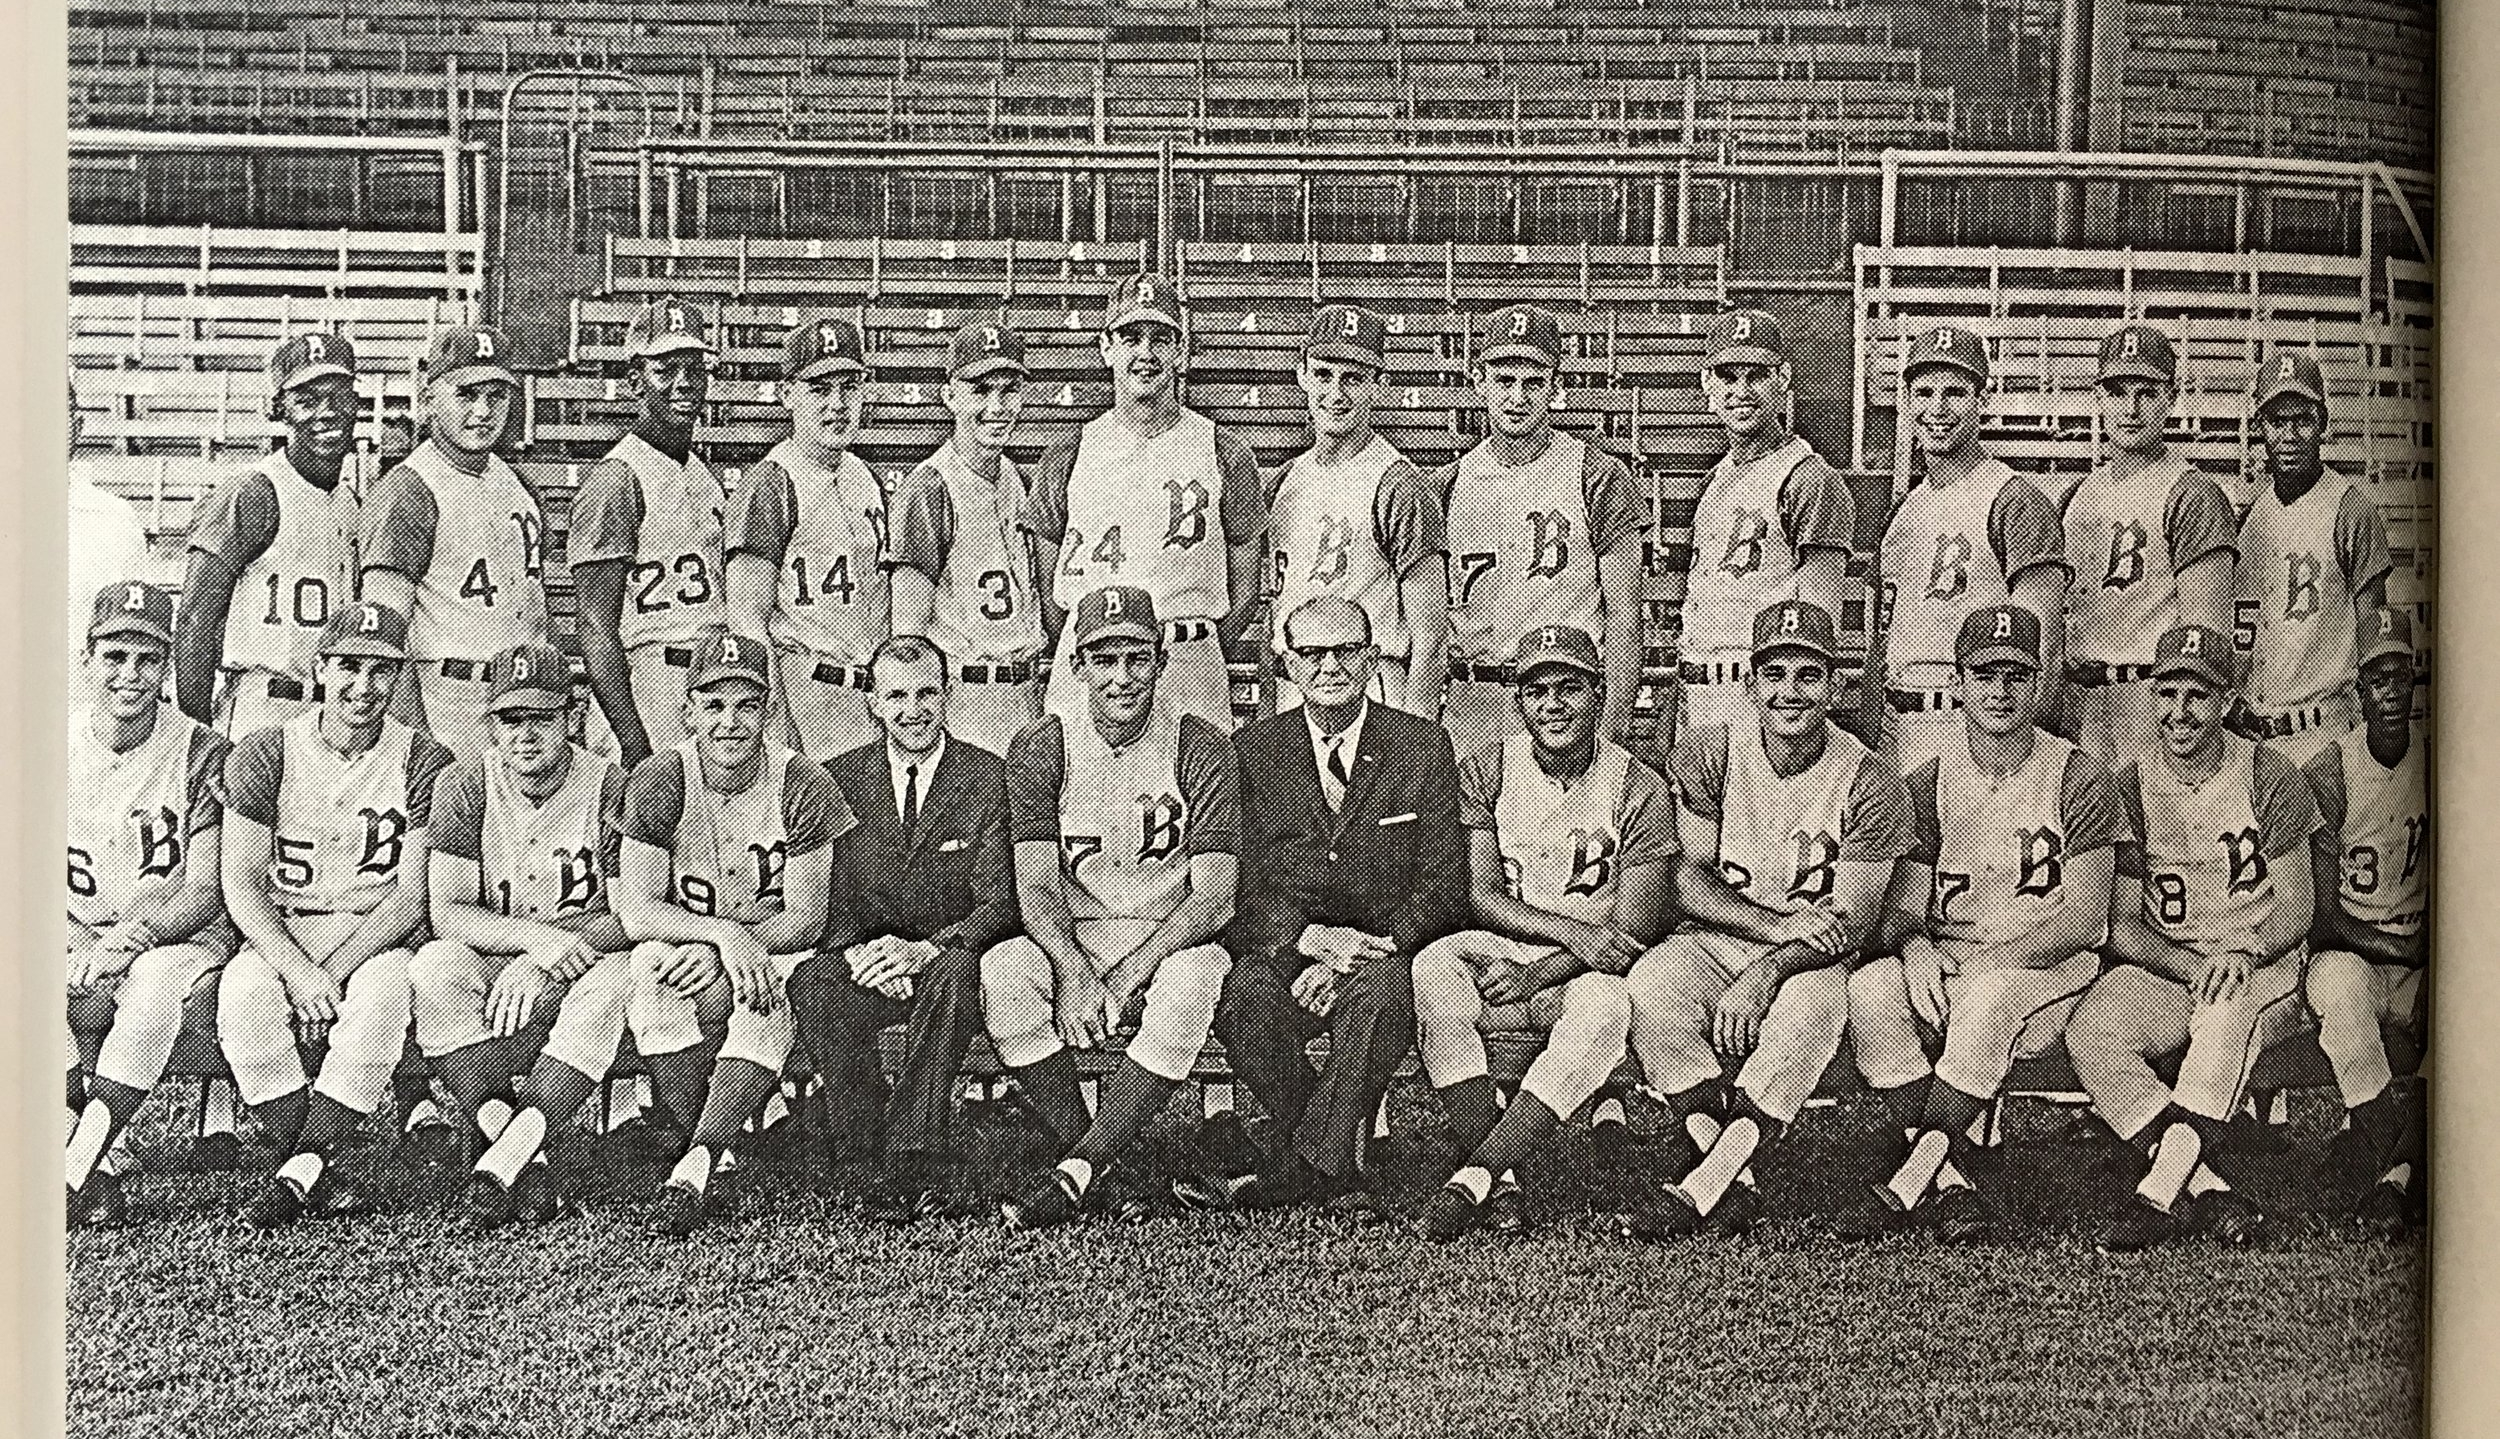 Paul Seitz, the owner of Little Professor, is a retired baseball player who spent 10 years in the pros and played for the Birmingham Barons in the mid 1960s. He is shown above as a player on the first integrated baseball team in the state. Paul is on the top row, 5th from the right (#17). He loves reminiscing about his baseball days with other baseball fans.